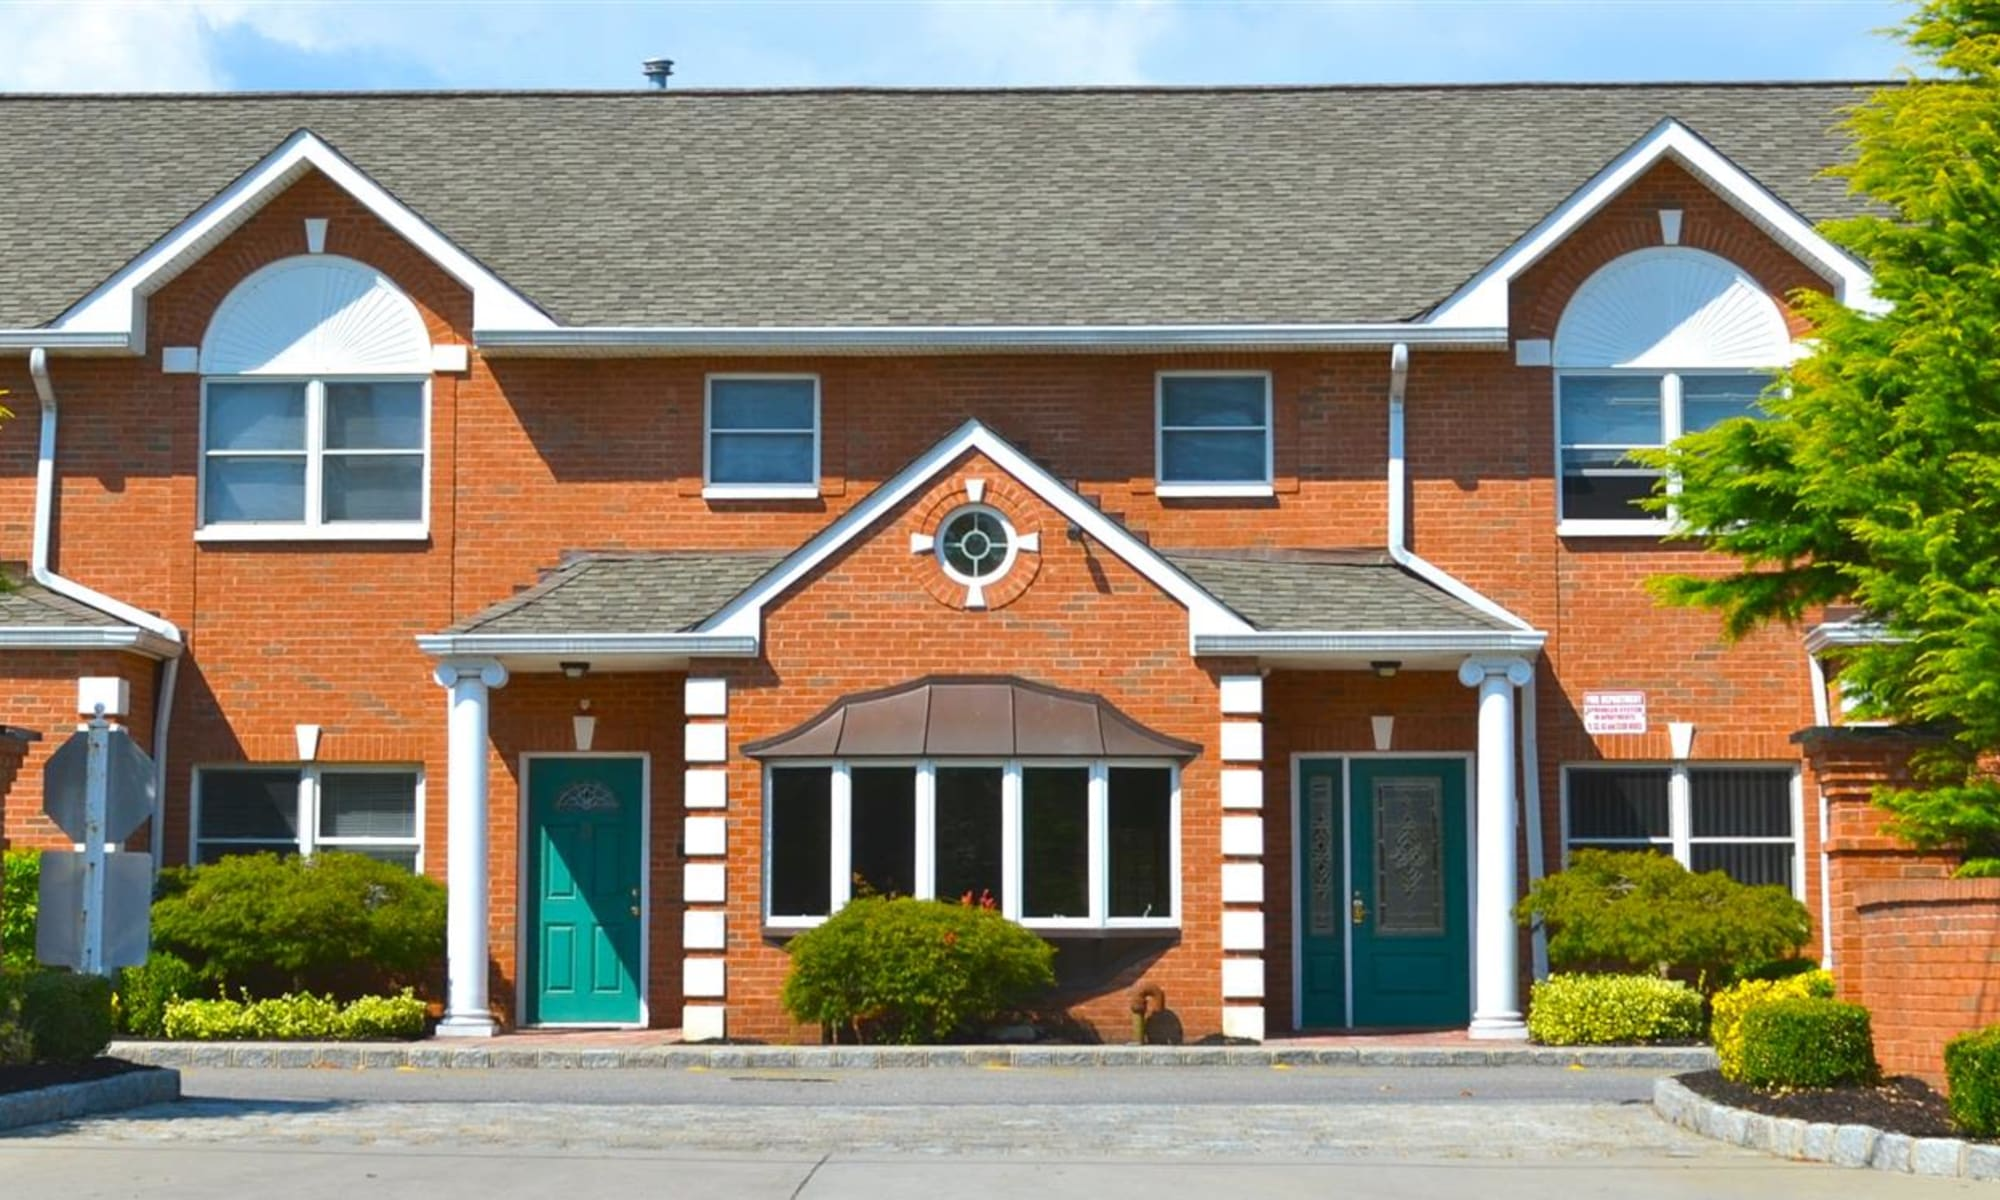 Apartments at Bunt Commons III in Amityville, New York